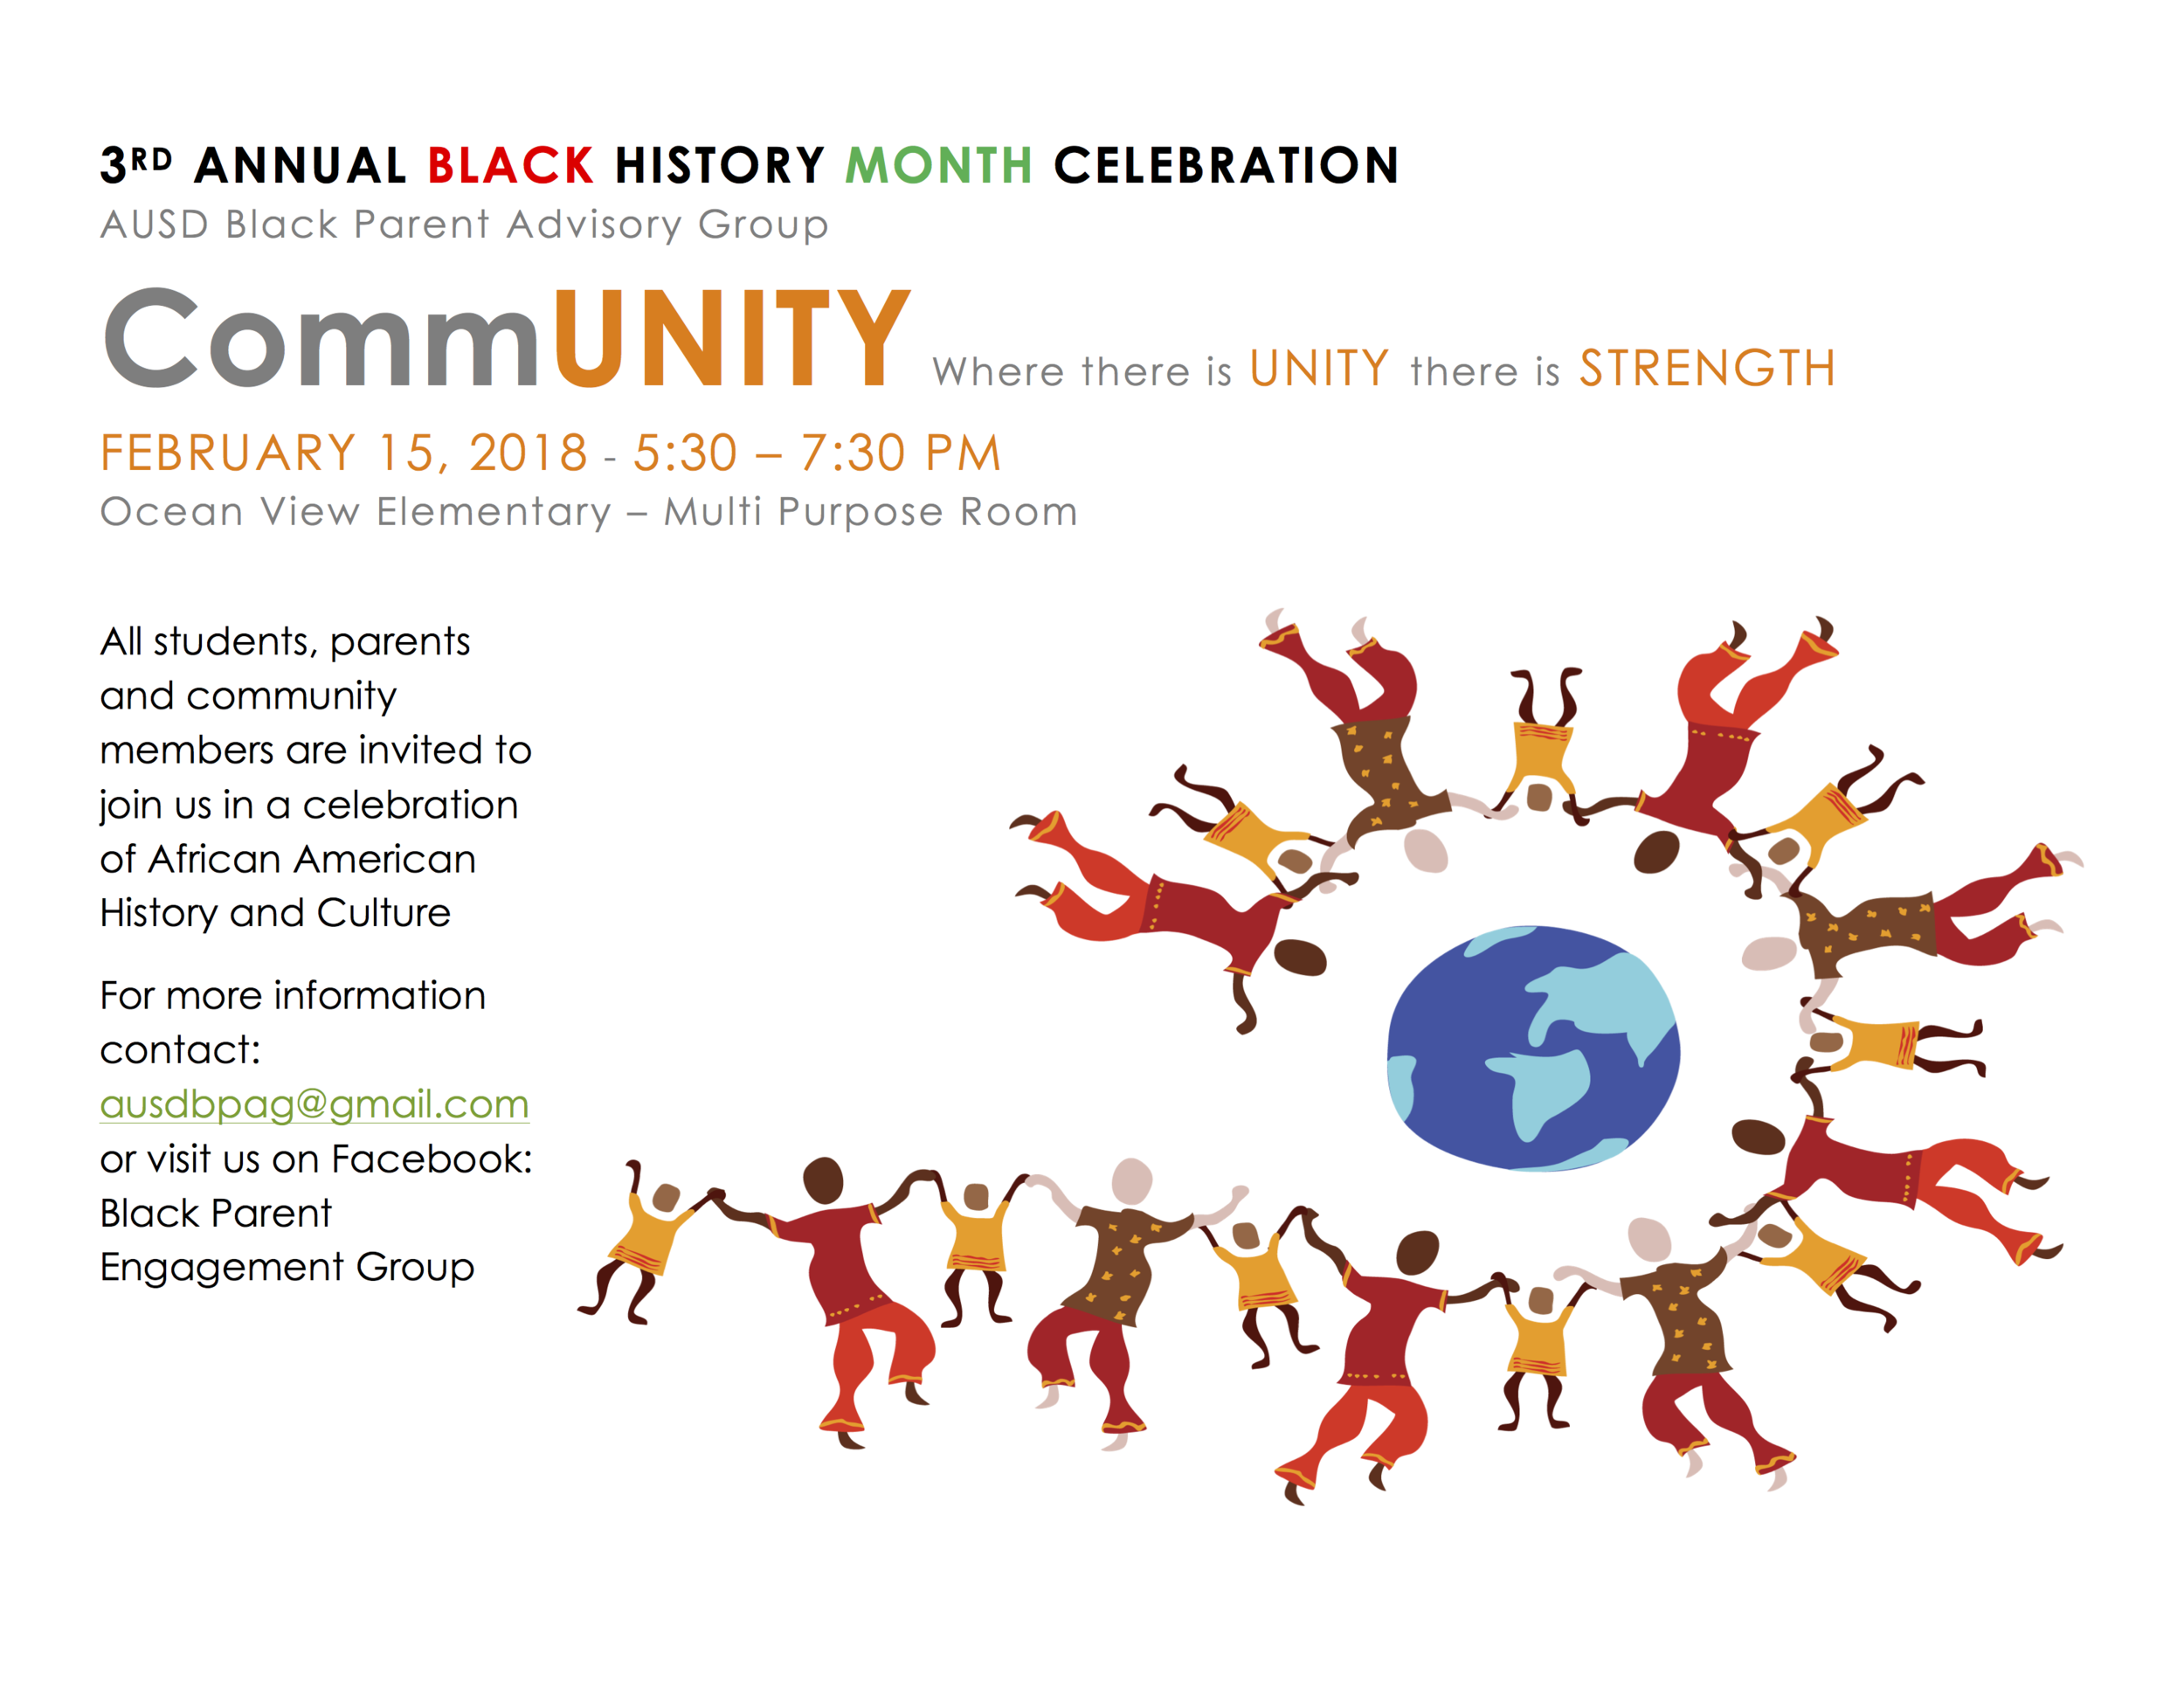 3rd Annual Black History Month Celebration Flyer.png